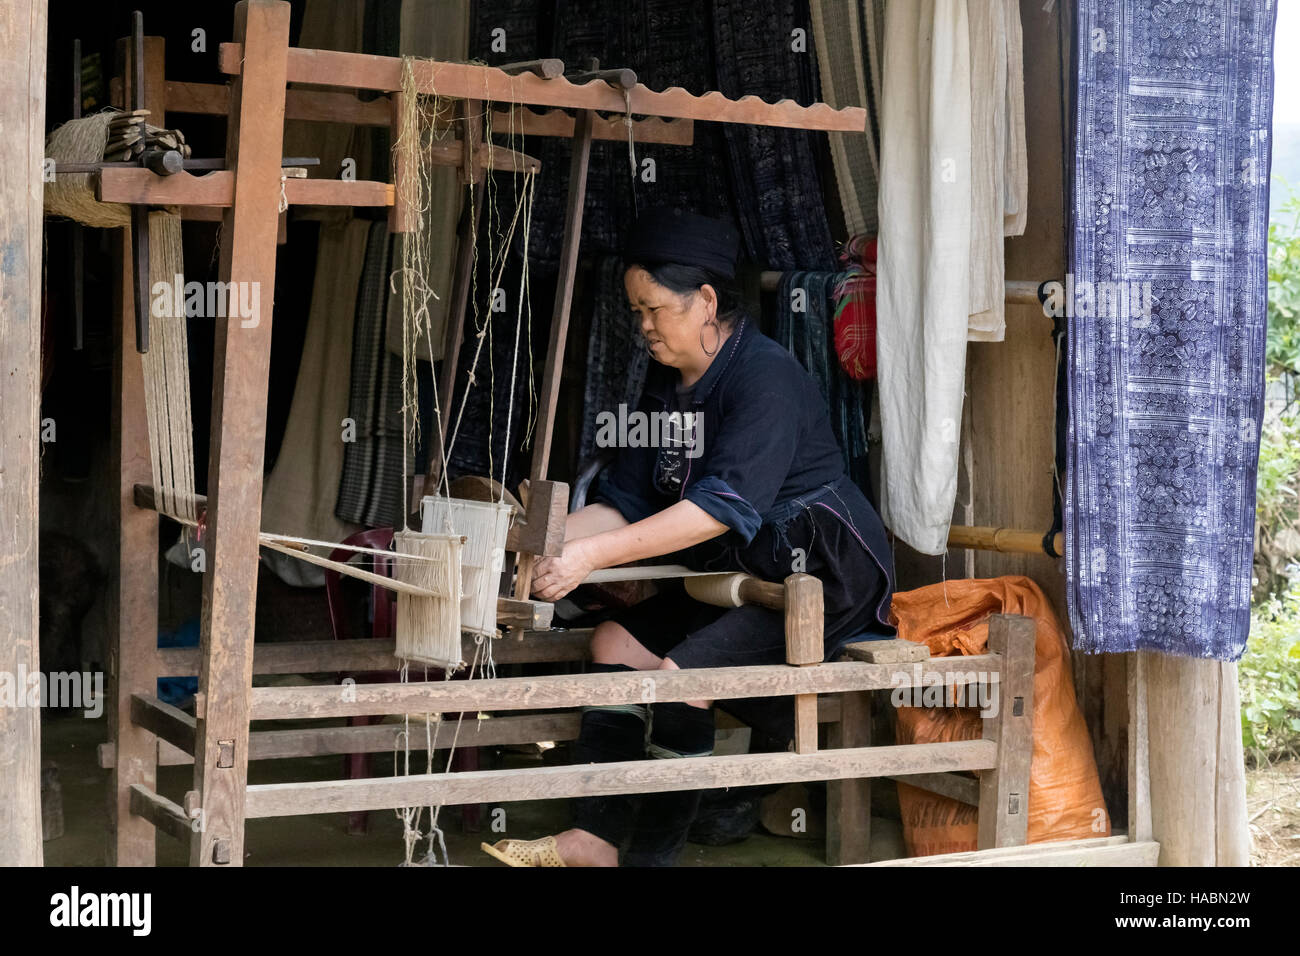 Black Hmong woman weaving on a loom in Cat Cat village, Sapa, Vietnam, Asia - Stock Image